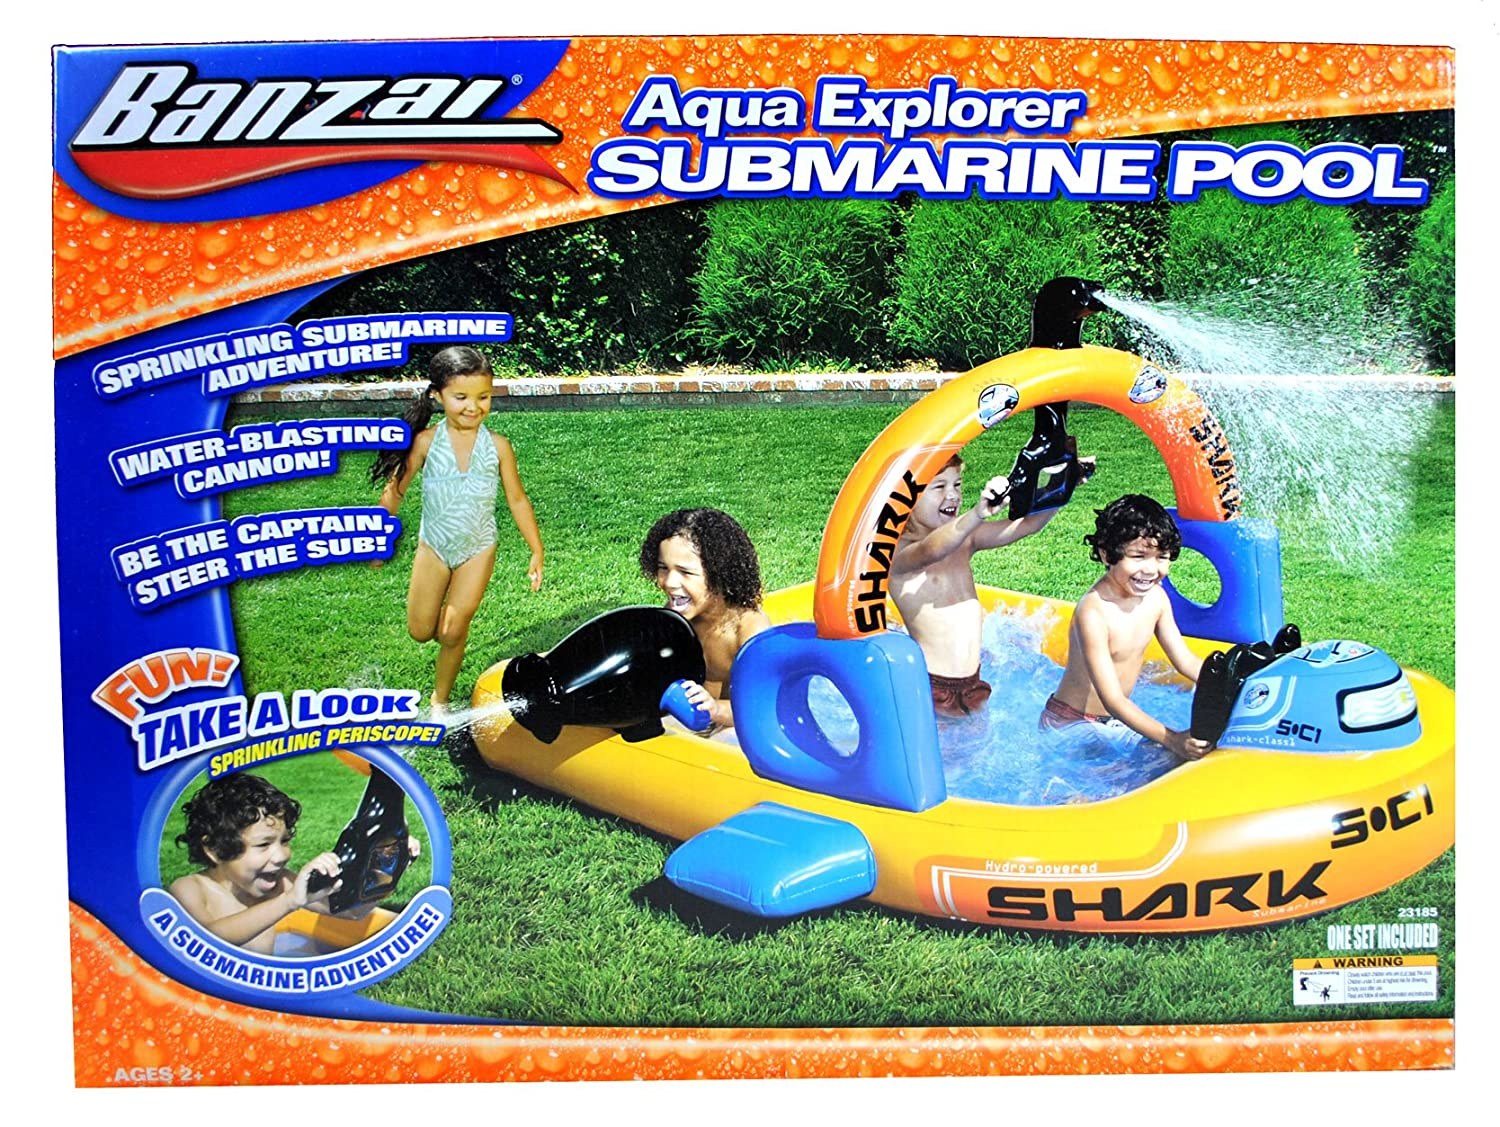 Banzai Aqua Explorer Series Inflatable Swimming Pool -SUBMARINE POOL with  Water Blasting Cannon, Continuous Spray Periscope Sprinkler, Inflatable  Arch ...